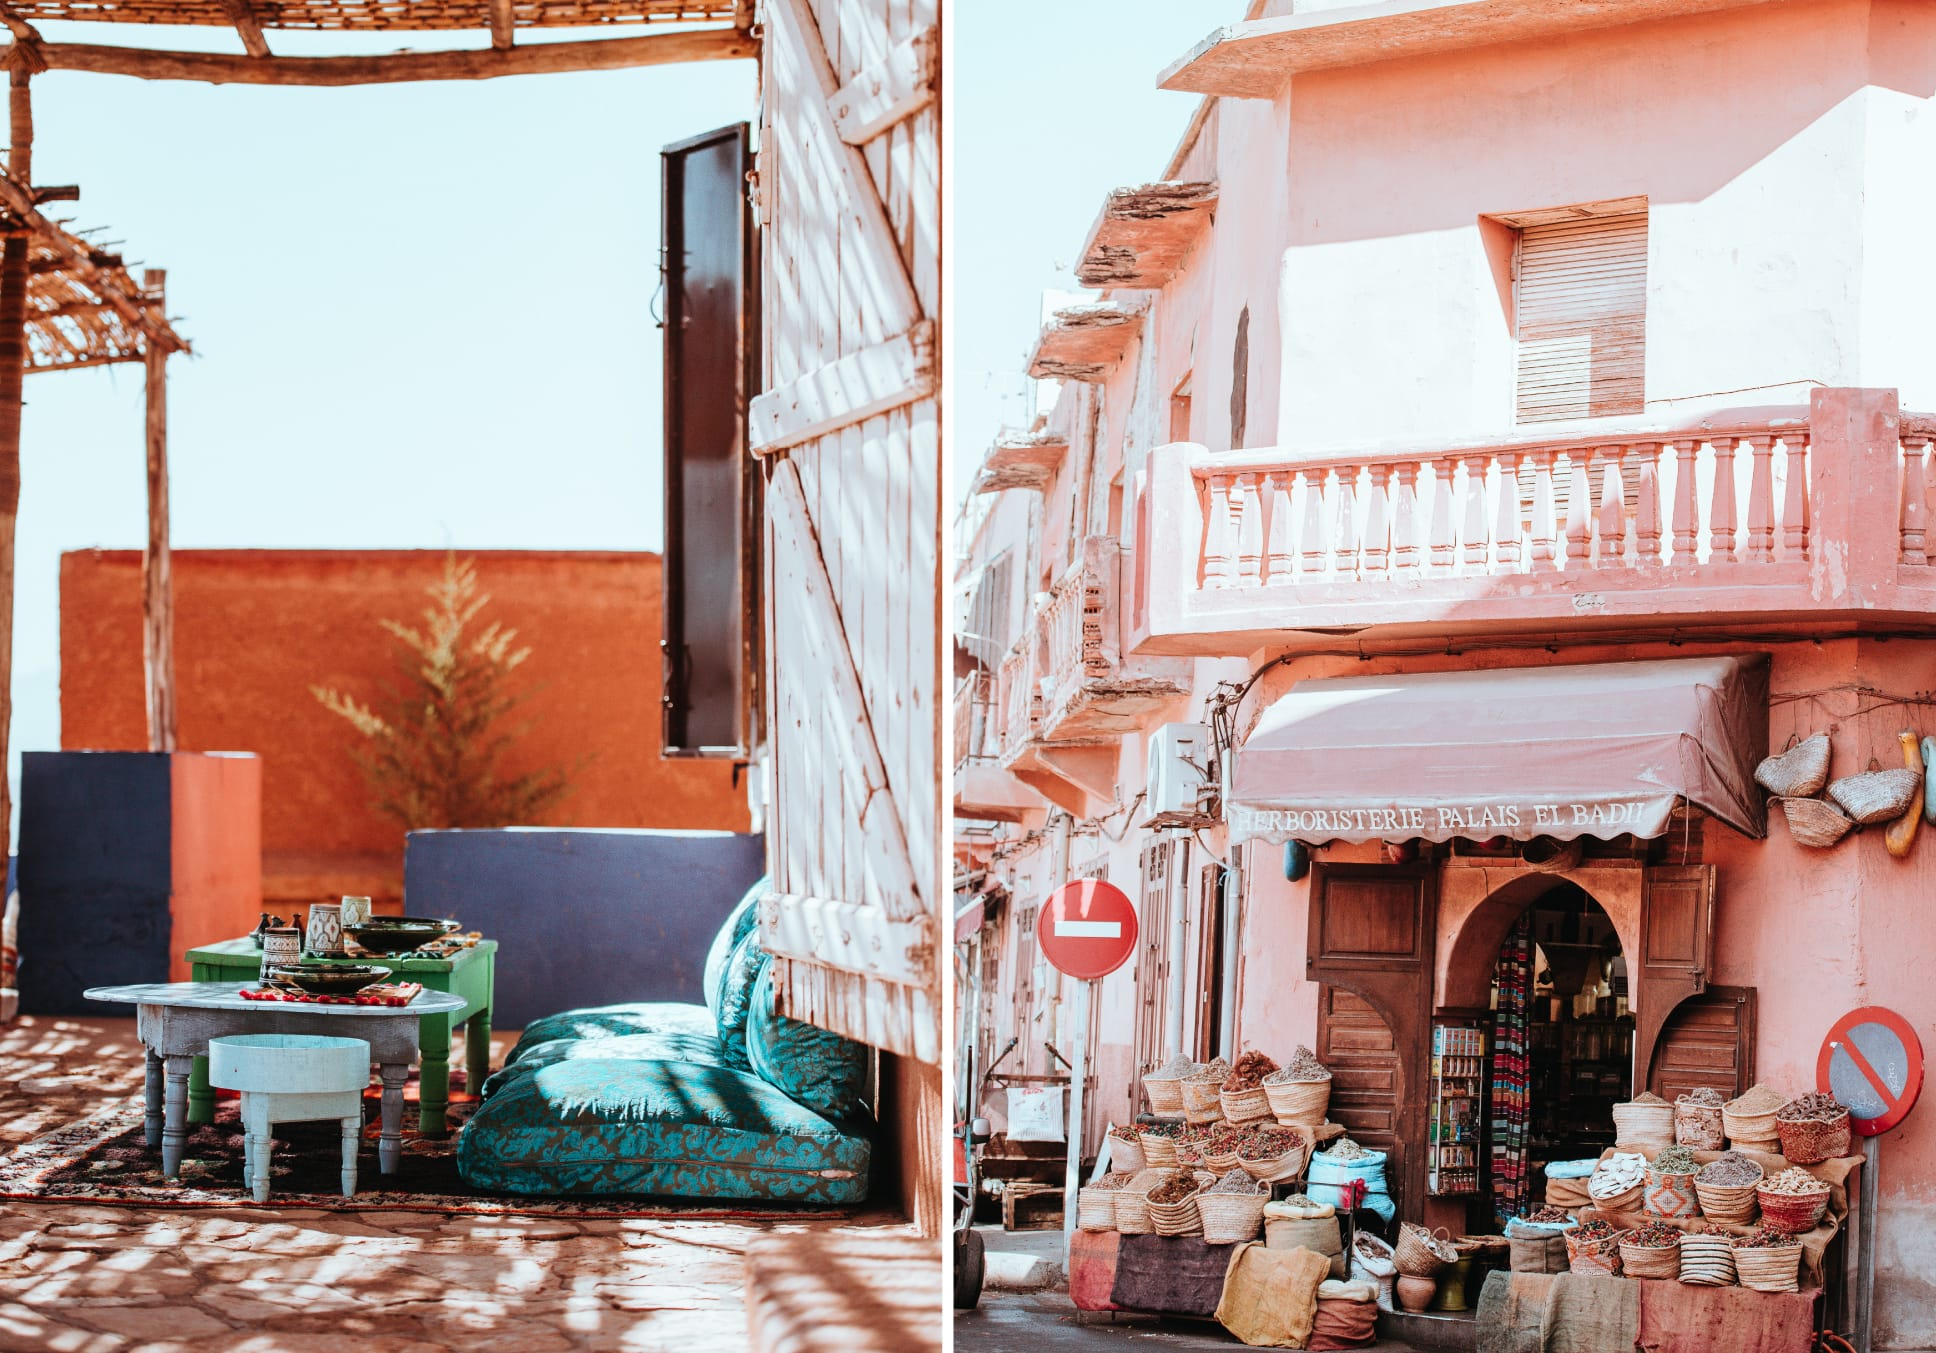 Moroccan lifestyle shots hues of red